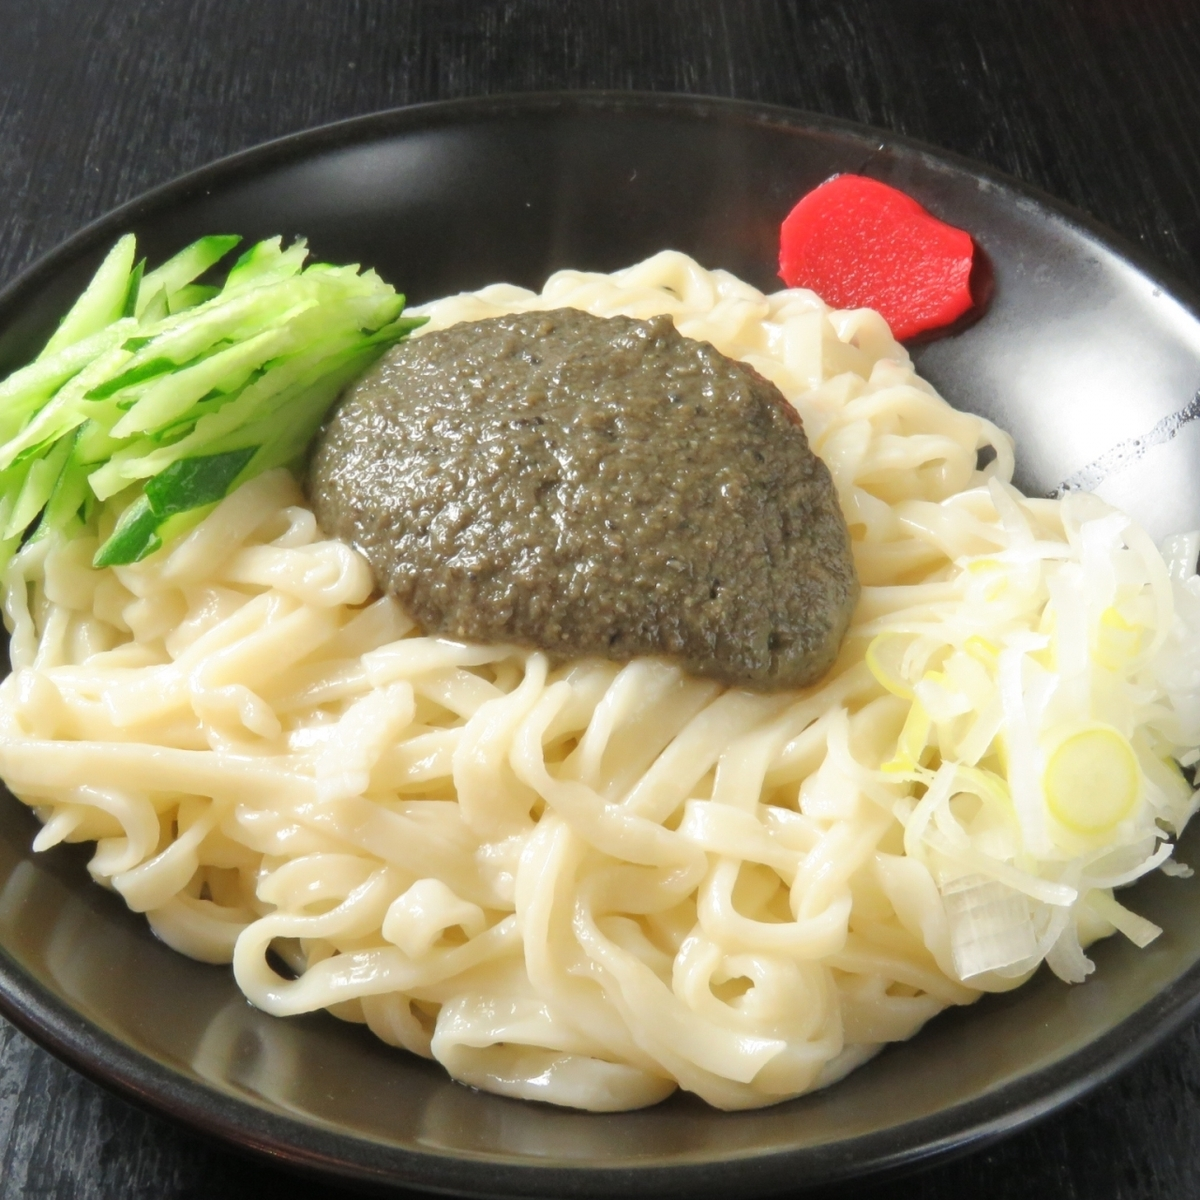 Morioka specialty with noodles